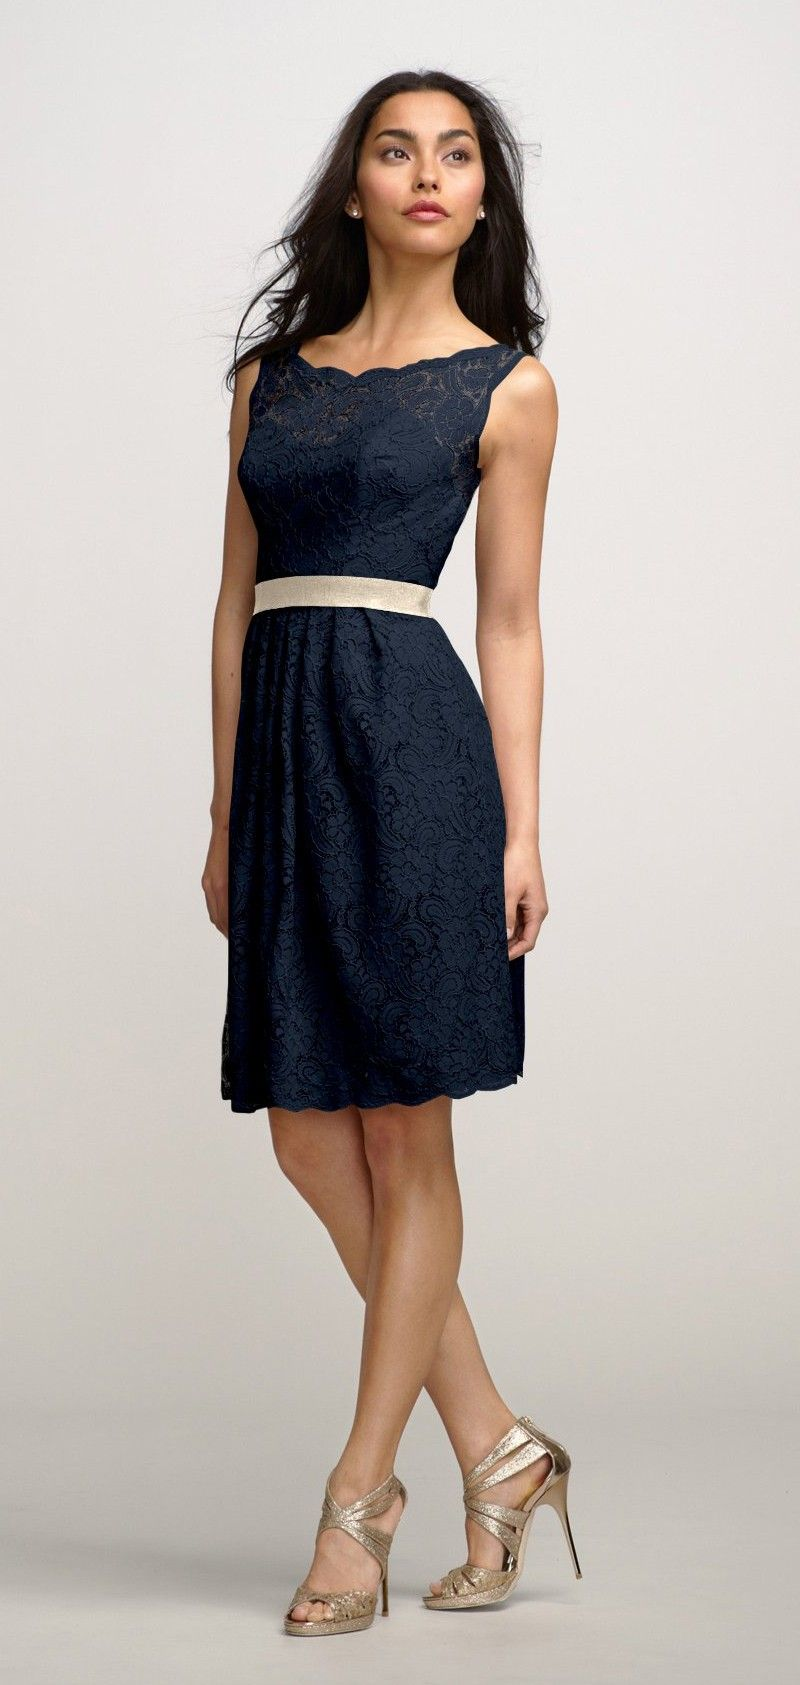 Navy Bridesmaids dresses.http://www.weddingtonway.com/products